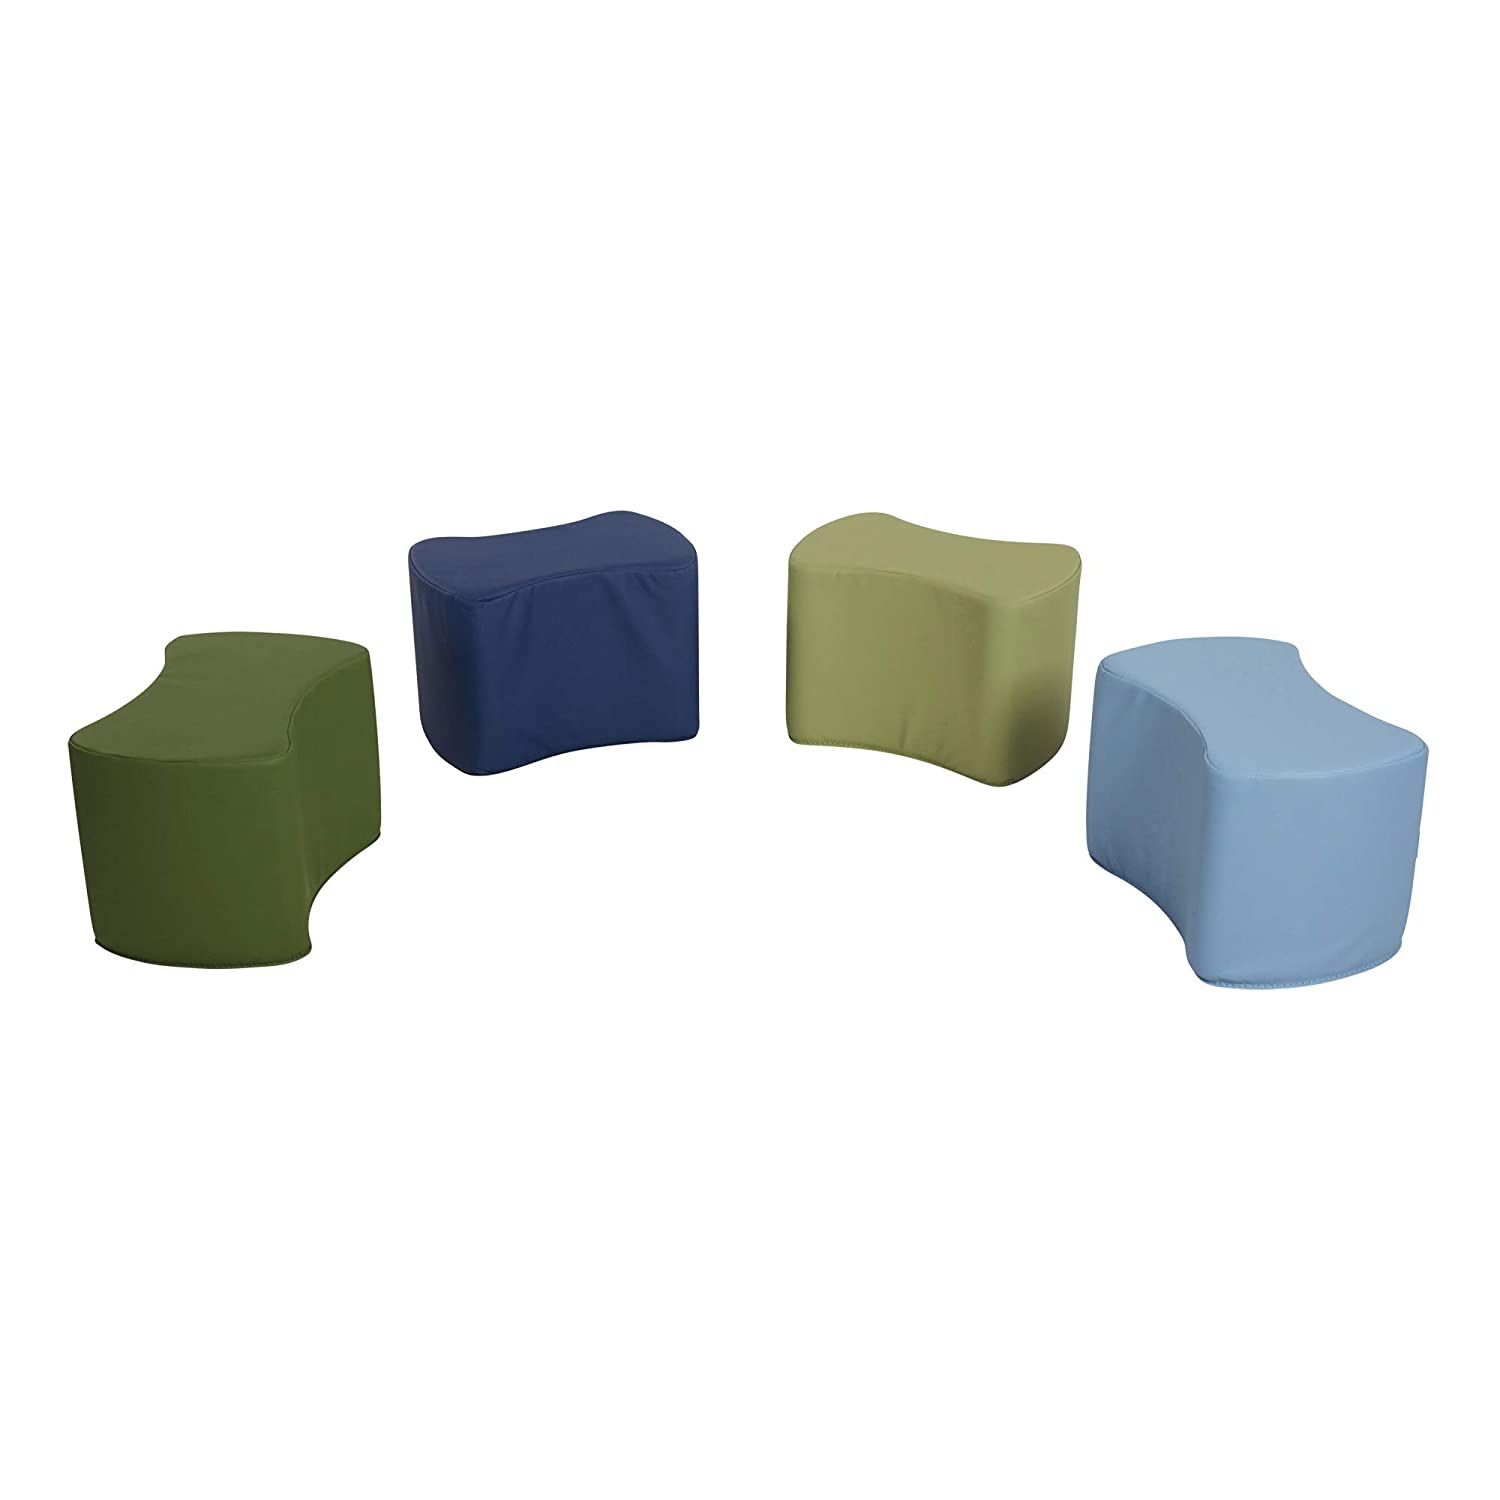 Sprogs Foam Soft Flexible Seating - Bow Tie Stool Set for Toddlers and Kids- Four Piece Set (10